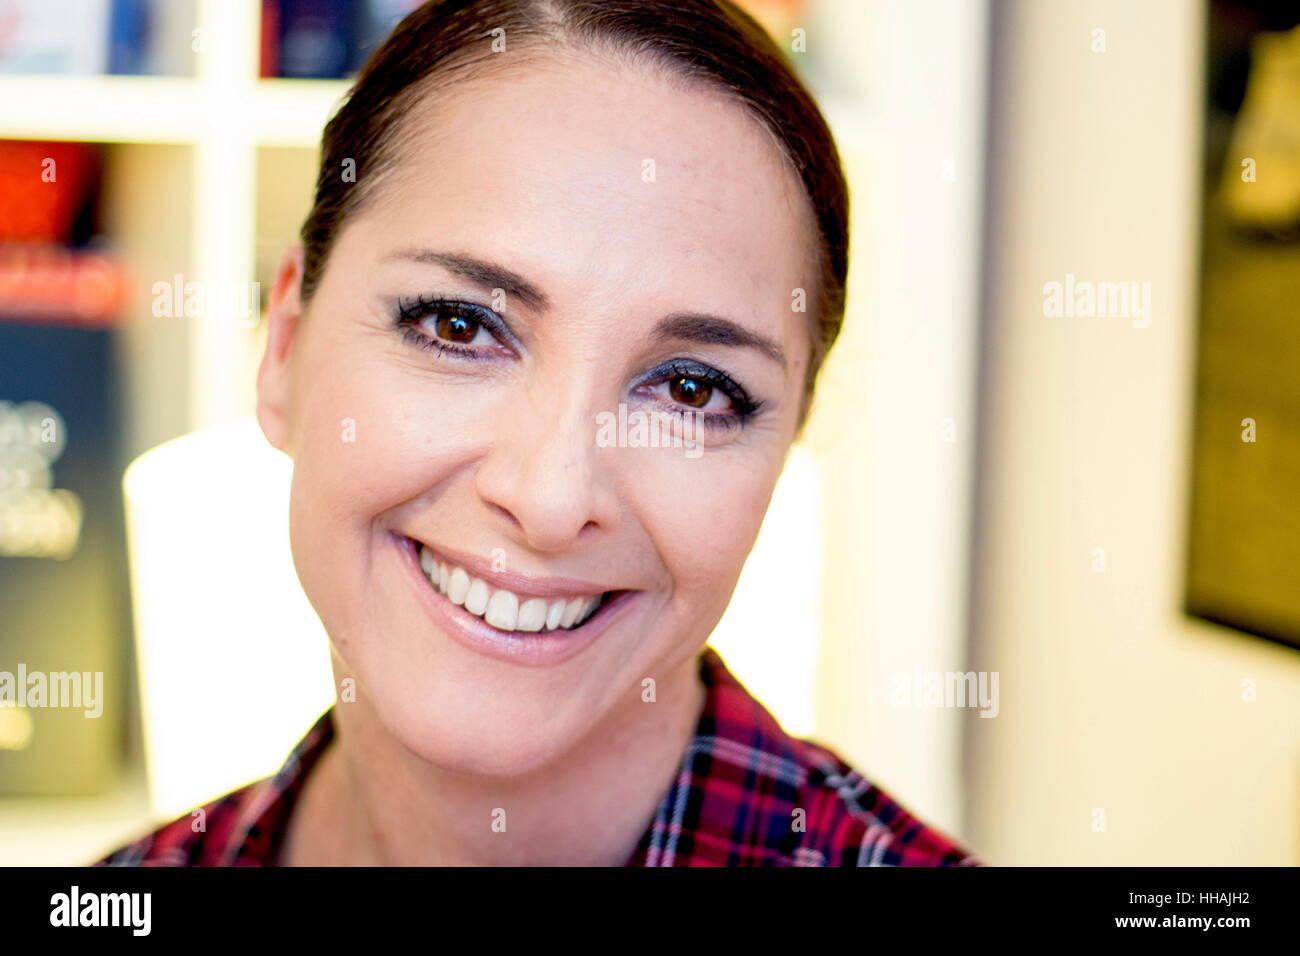 Portrait of a woman smiling, happy, looking at camera, mid aged. - Stock Image